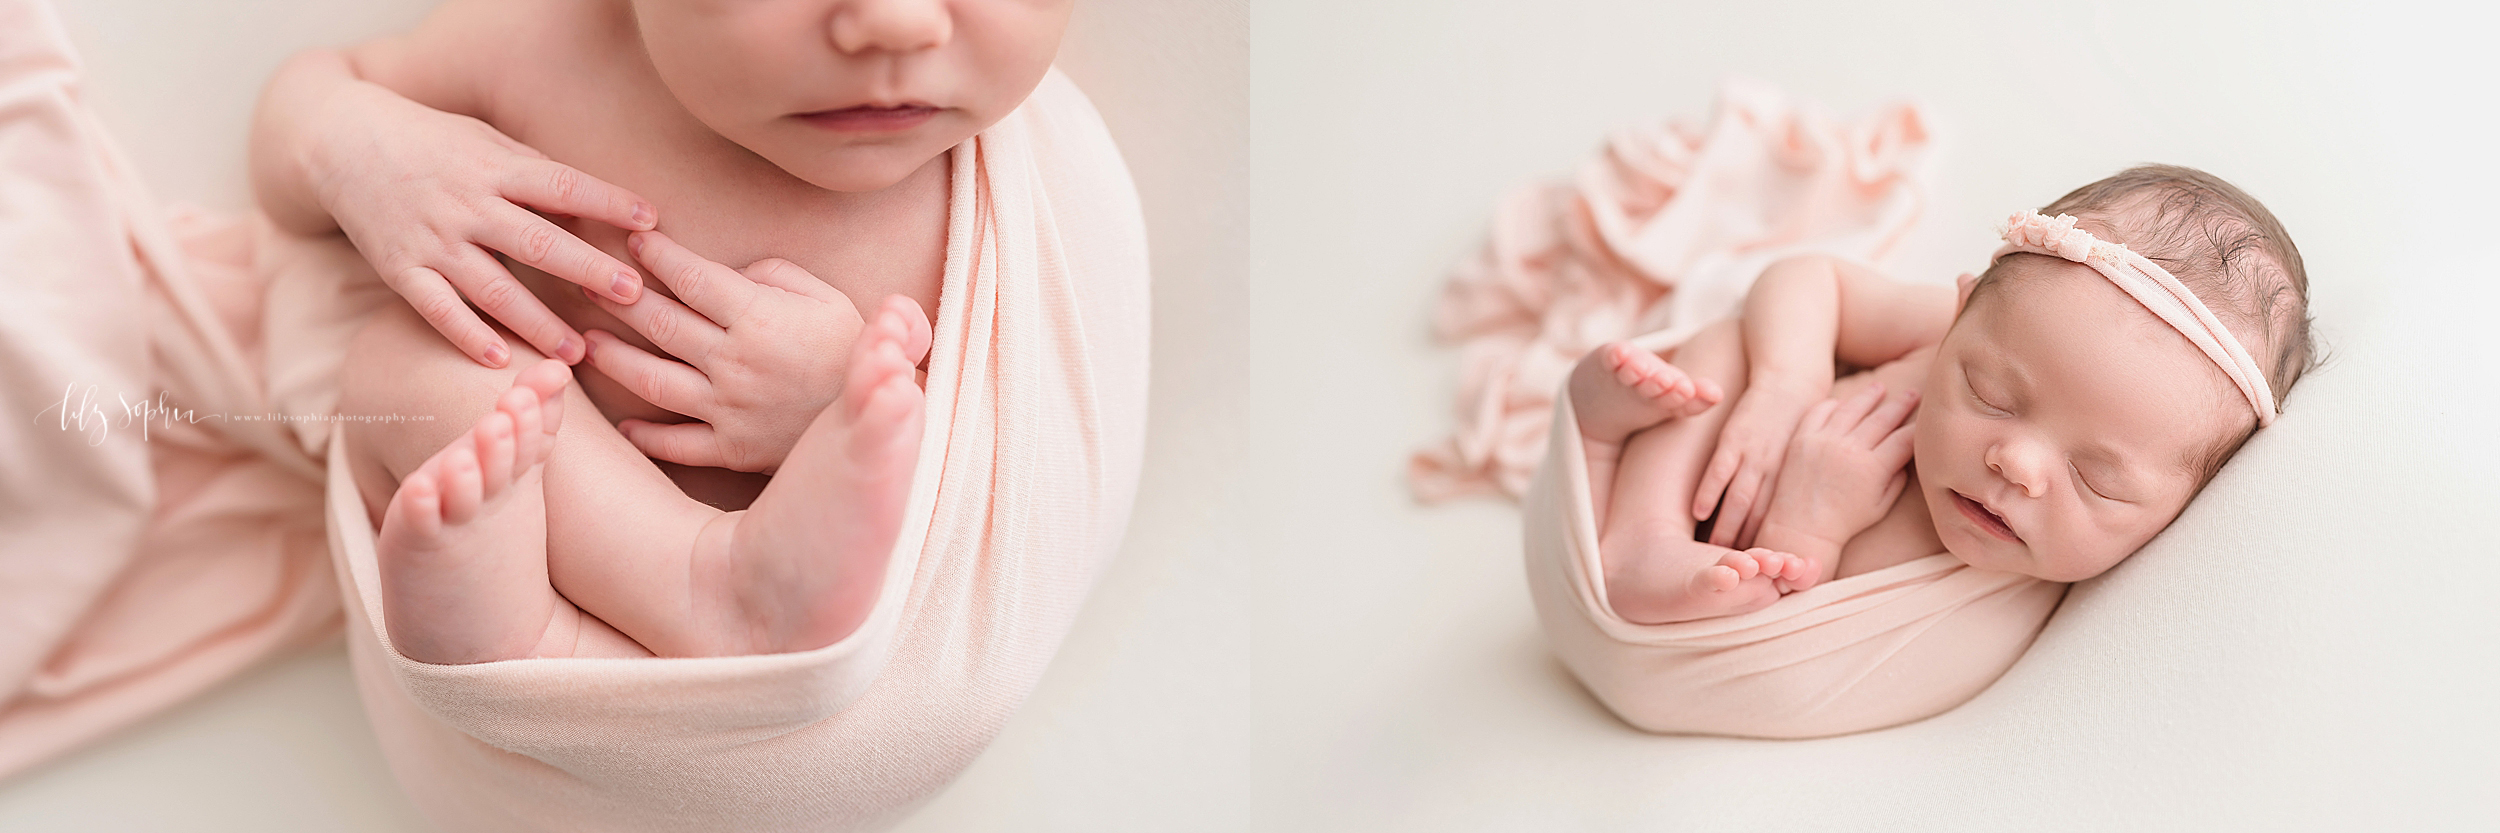 atlanta-decatur-candler-park-sandy-springs-buckhead-virginia-highlands-west-end-decatur-lily-sophia-photography-studio-pictures-family-newborn-baby-girl-toddler-big-sister-portraits_1809.jpg